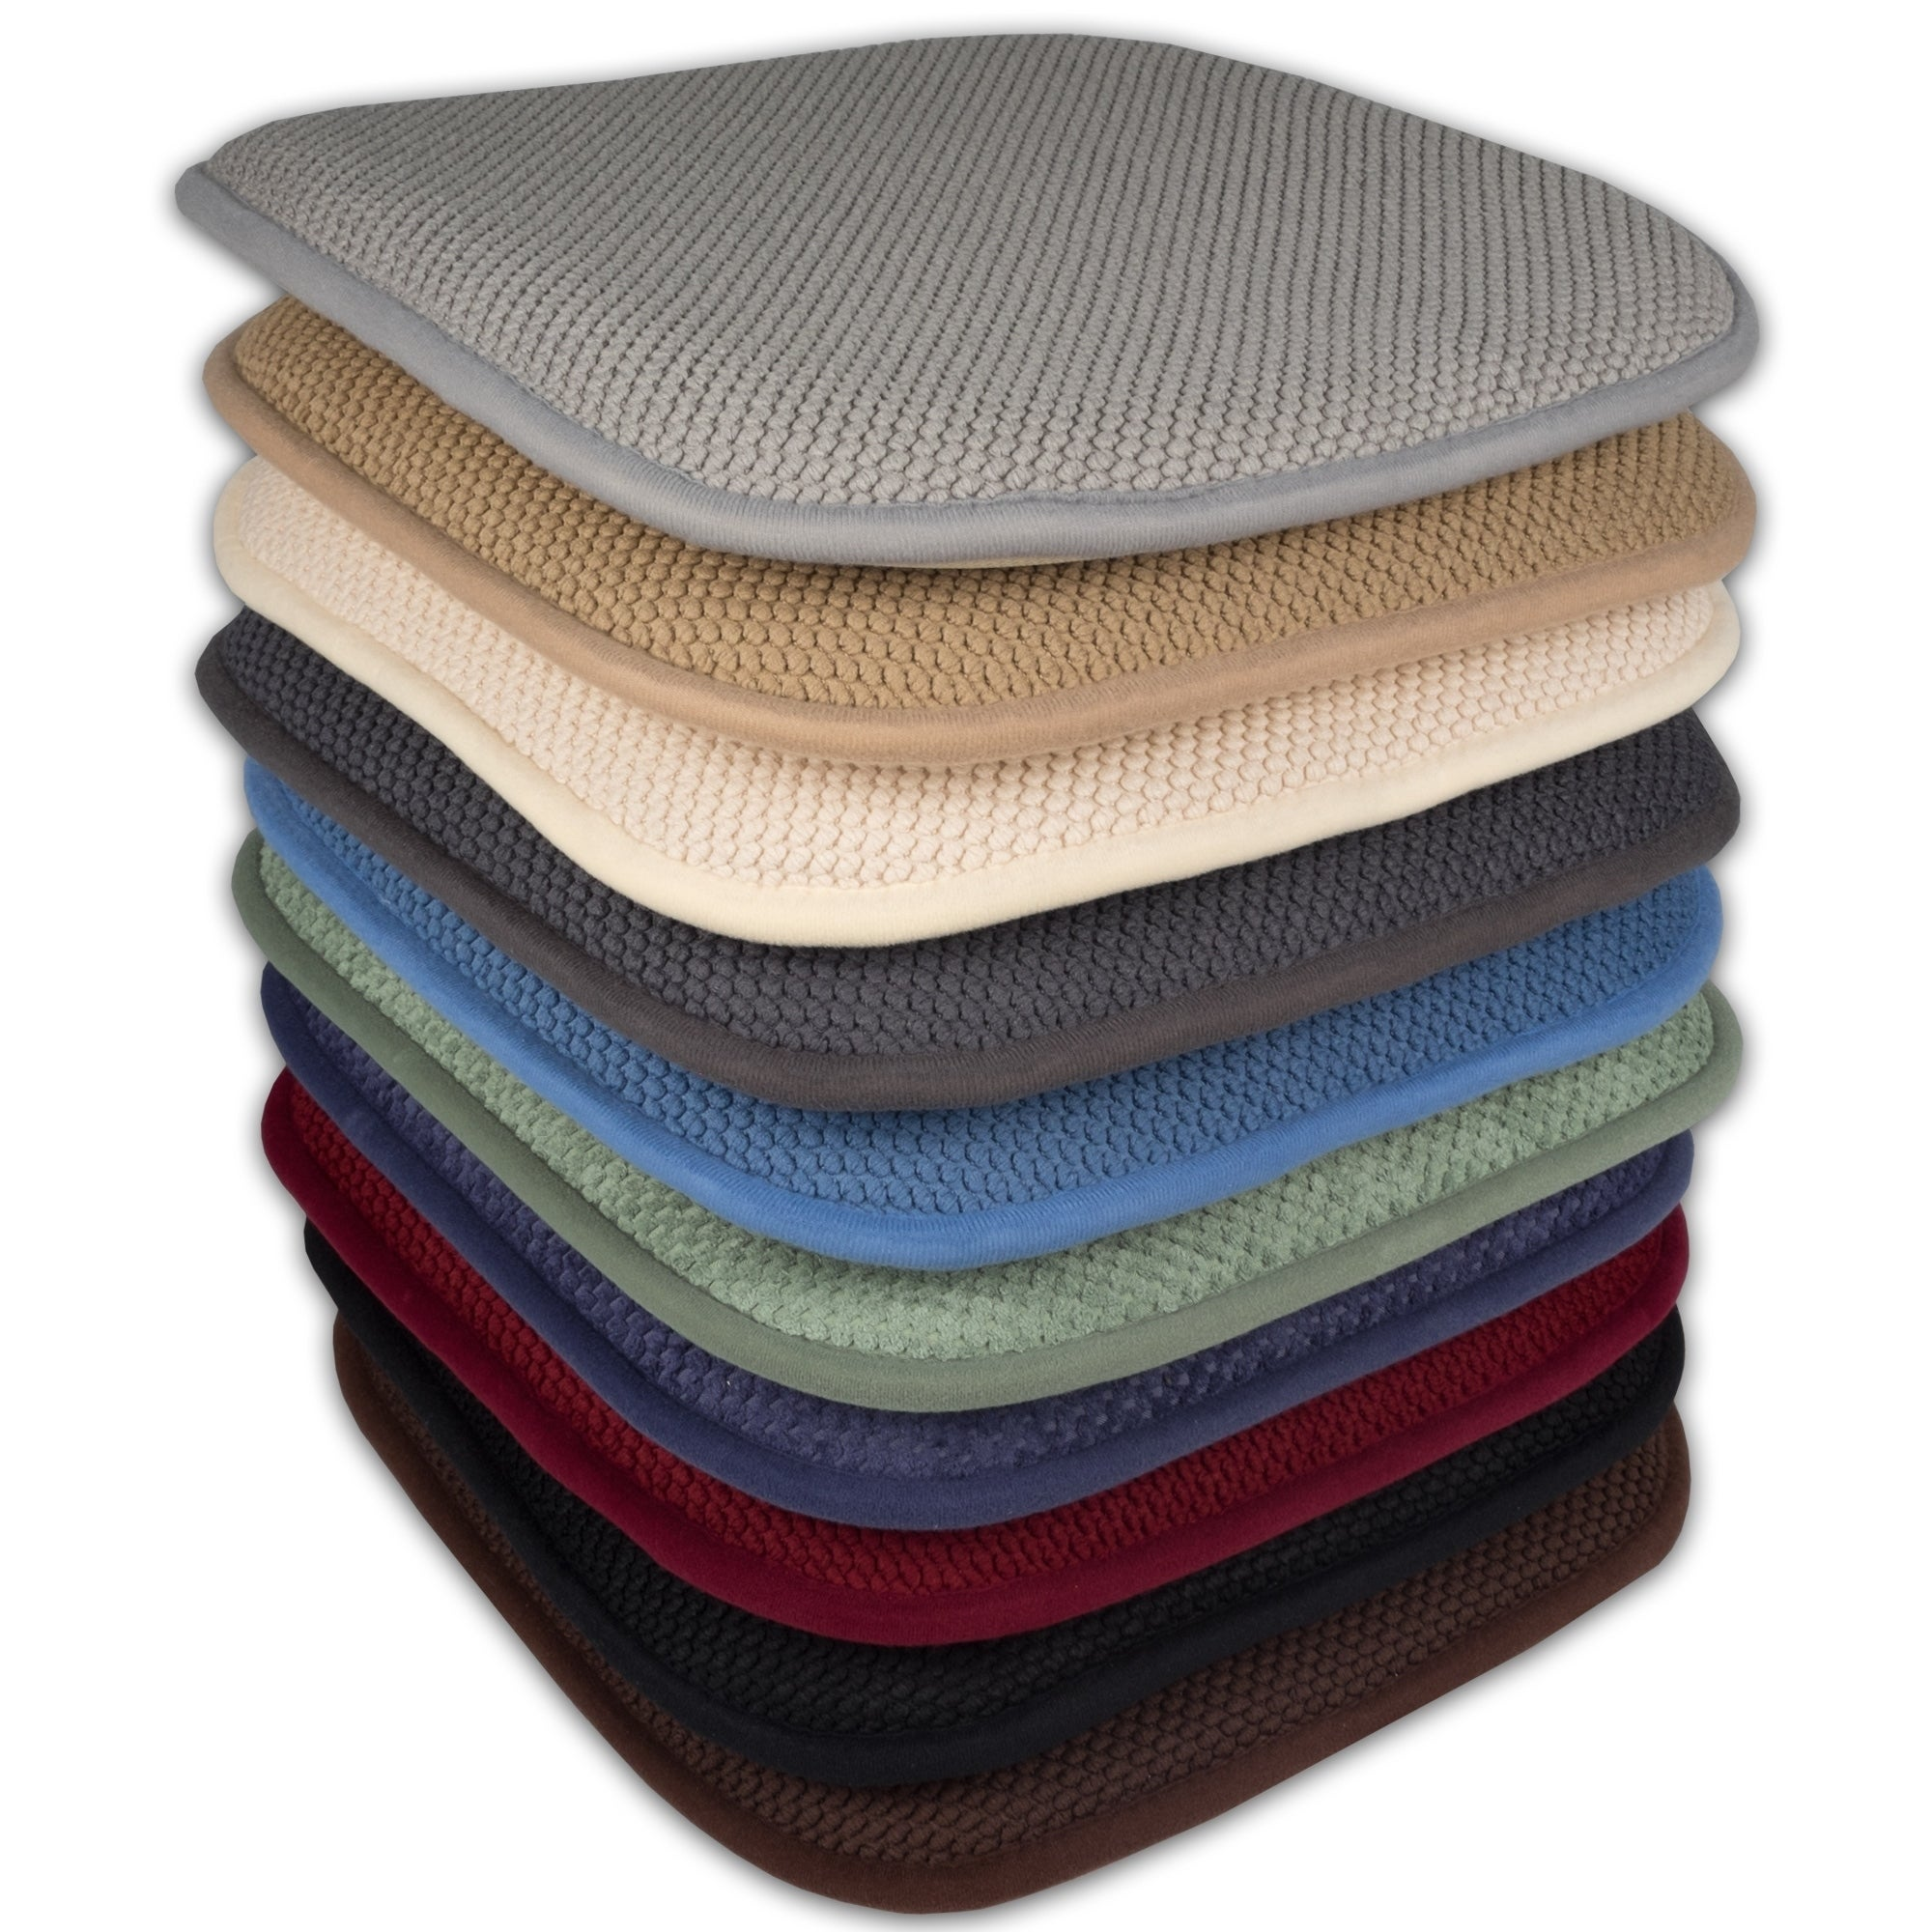 16x16 memory foam chair pad seat cushion with non slip backing 2 or 4 pack 16 x 16